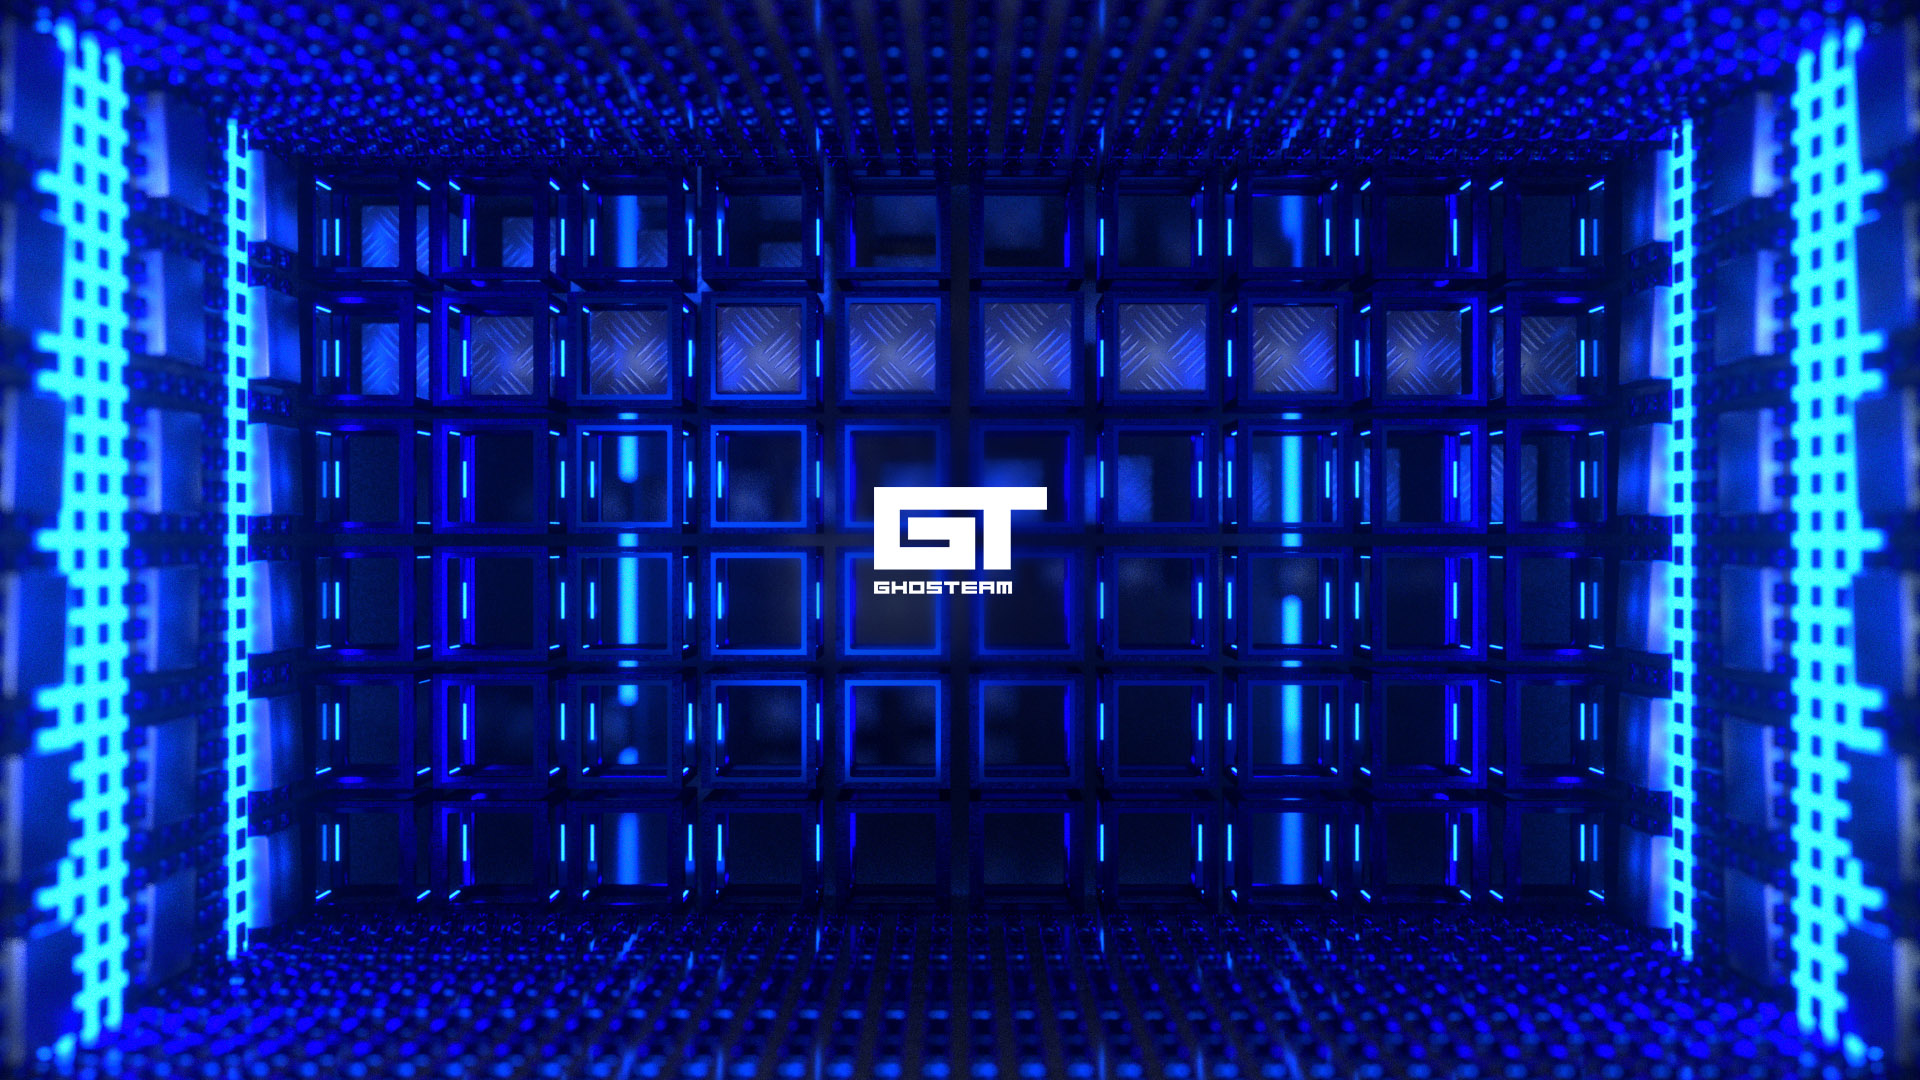 Beat Machines Preview by Ghosteam